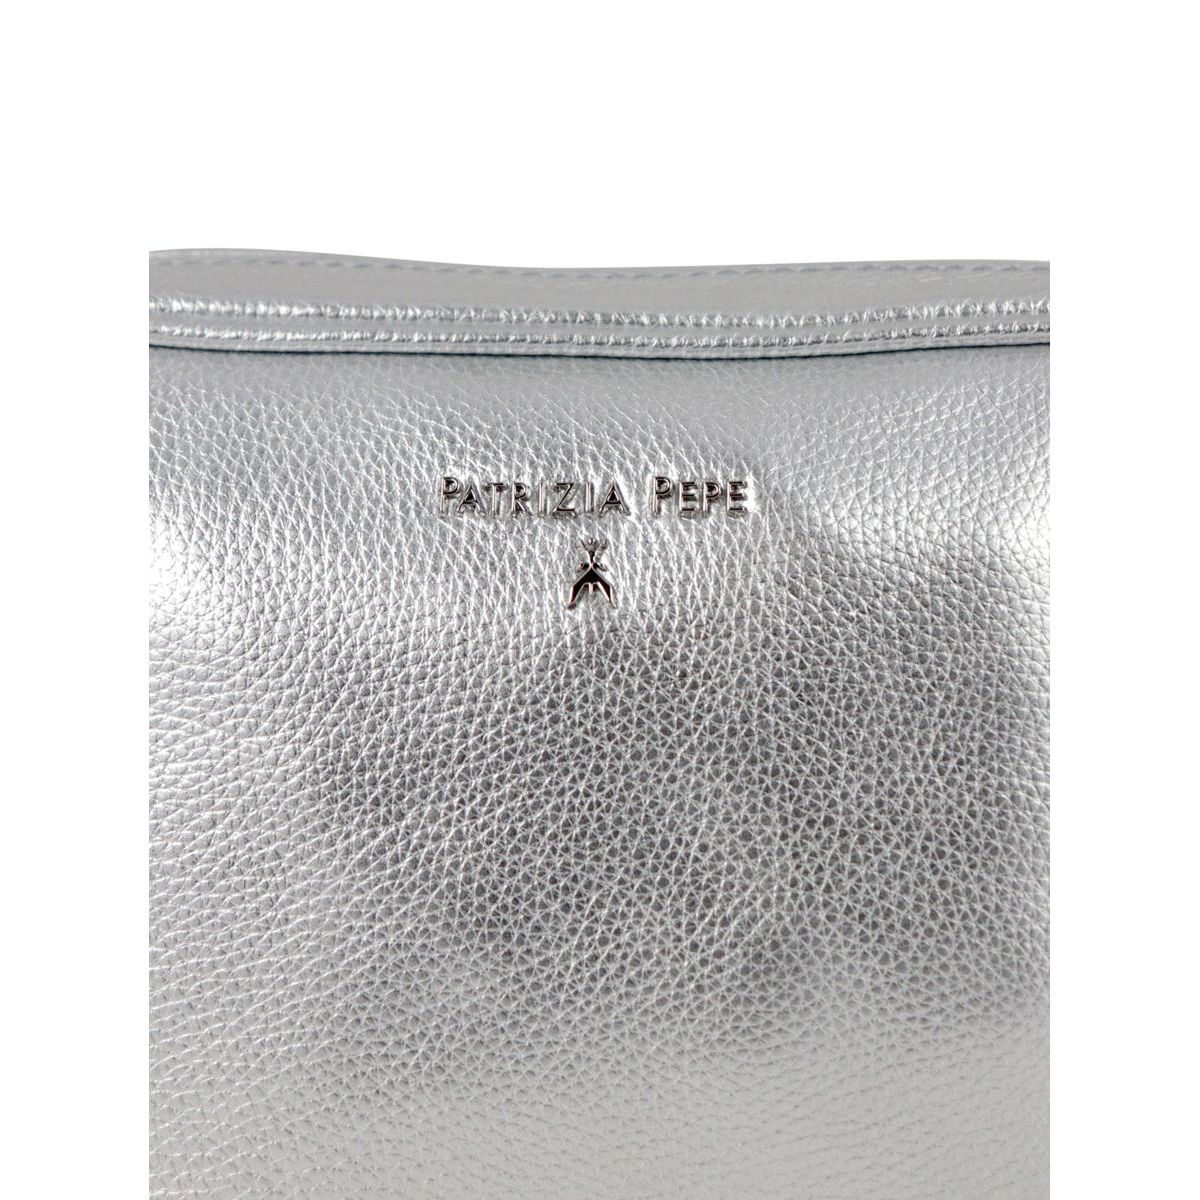 Beauty in textured leather with logo Silver Patrizia Pepe